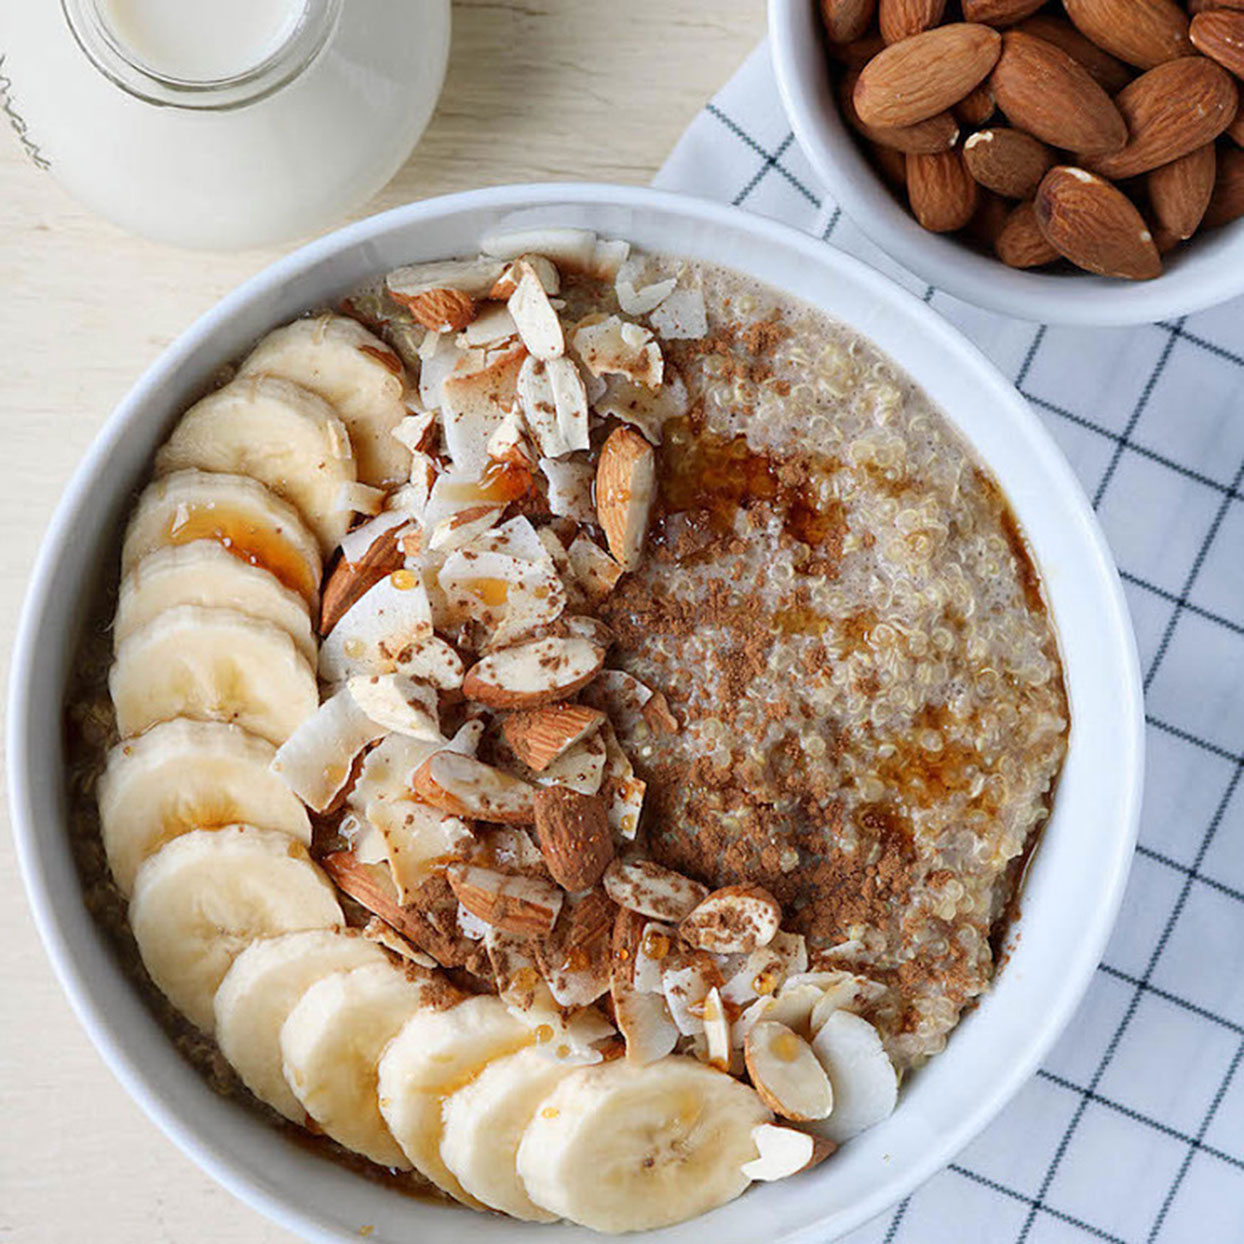 Sick of oatmeal? This quinoa breakfast bowl is going to become your new go-to. Cook the quinoa on Sunday, then, come Monday, just top with bananas, almonds, shredded coconut, and maple syrup for a meal that comes together in two minutes. You can also try one thesesatisfying breakfast recipes you can make in five easy minutes.Get the recipe:Cinnamon Quinoa Breakfast Bowl